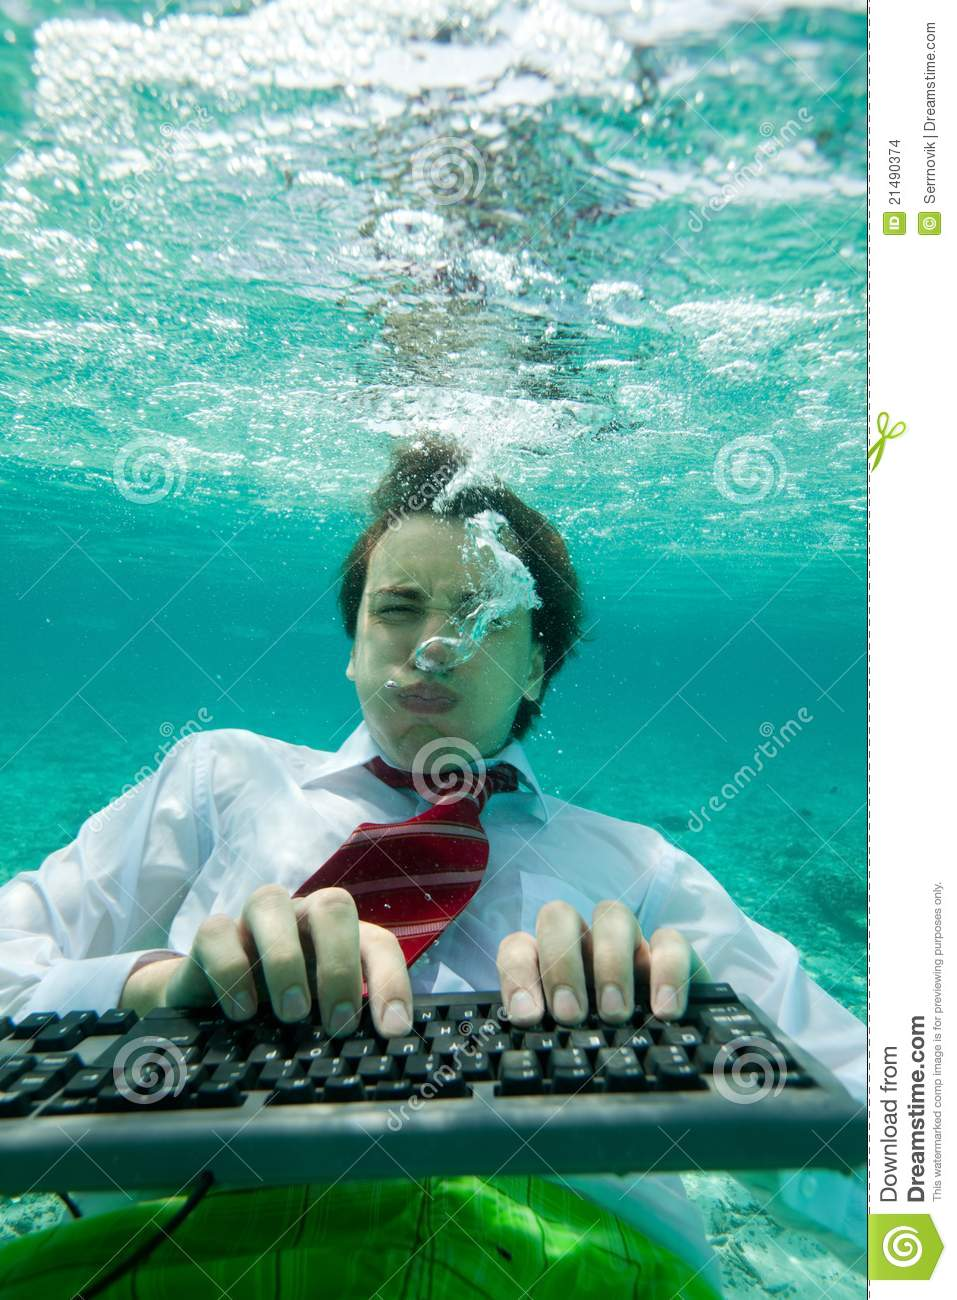 extreme working conditions stock images